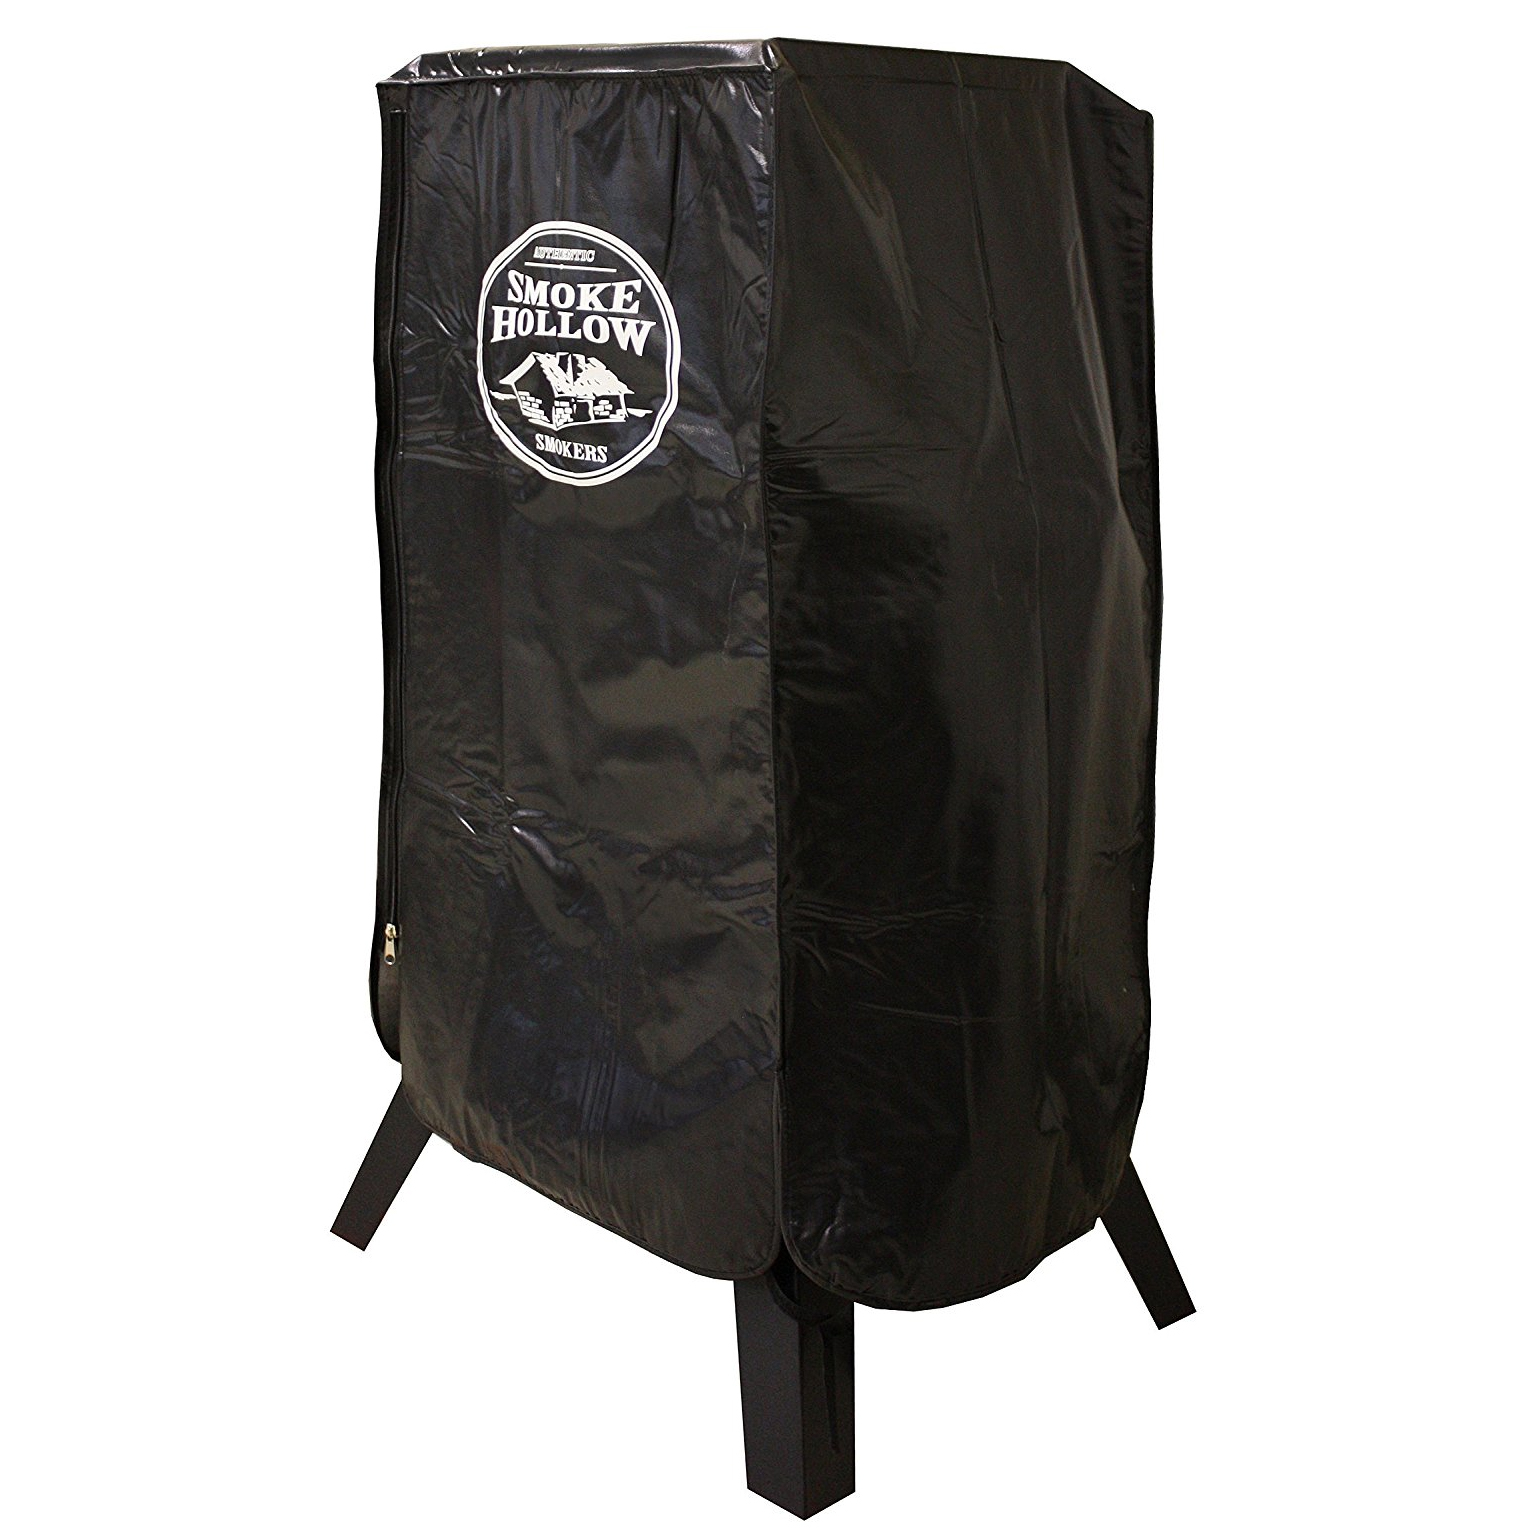 Smoke Hollow Weather Resistant Polyester Heavy Duty 30 to 36 Inch Smoker Cover